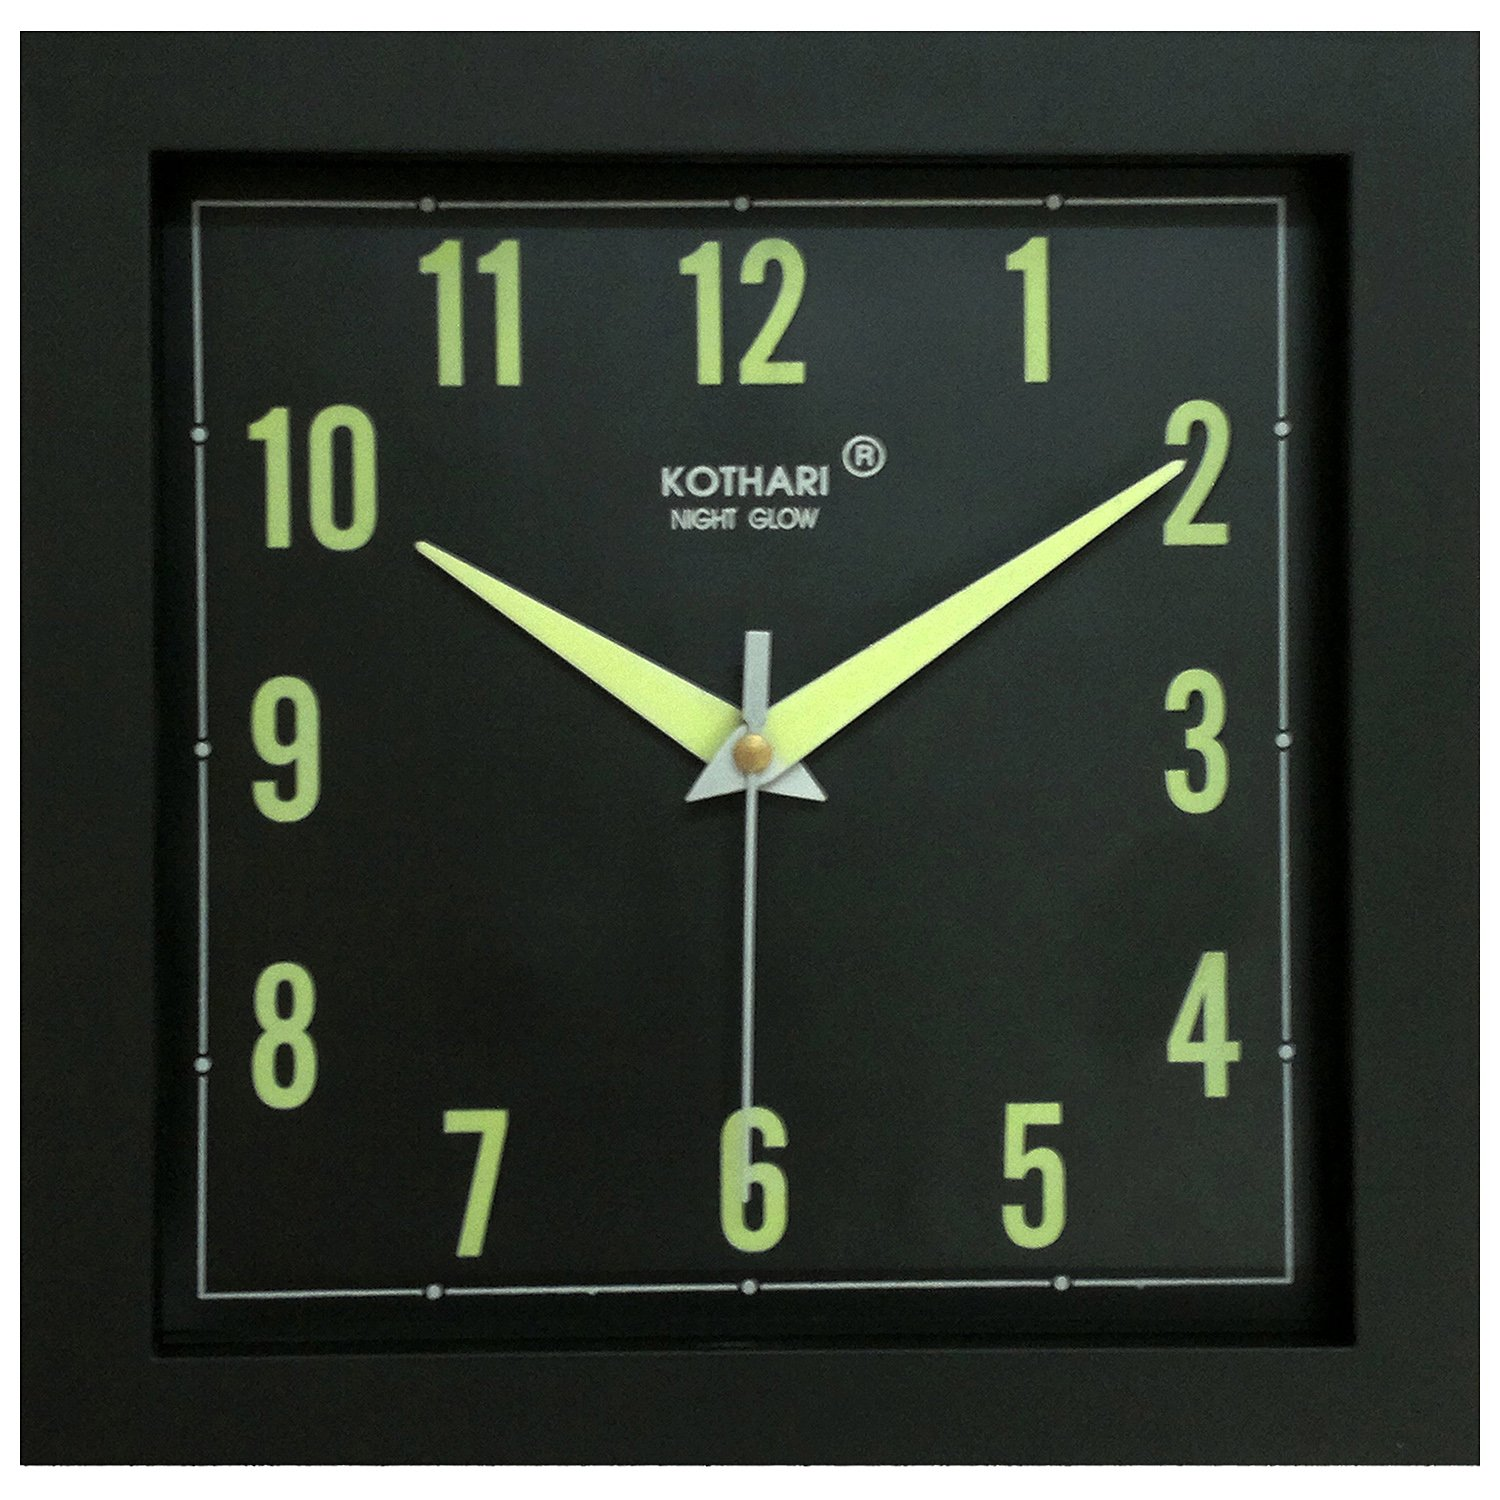 Radium wall clock online images home wall decoration ideas glow wall clock gallery home wall decoration ideas buy kothari night glow square plastic clock black amipublicfo Images